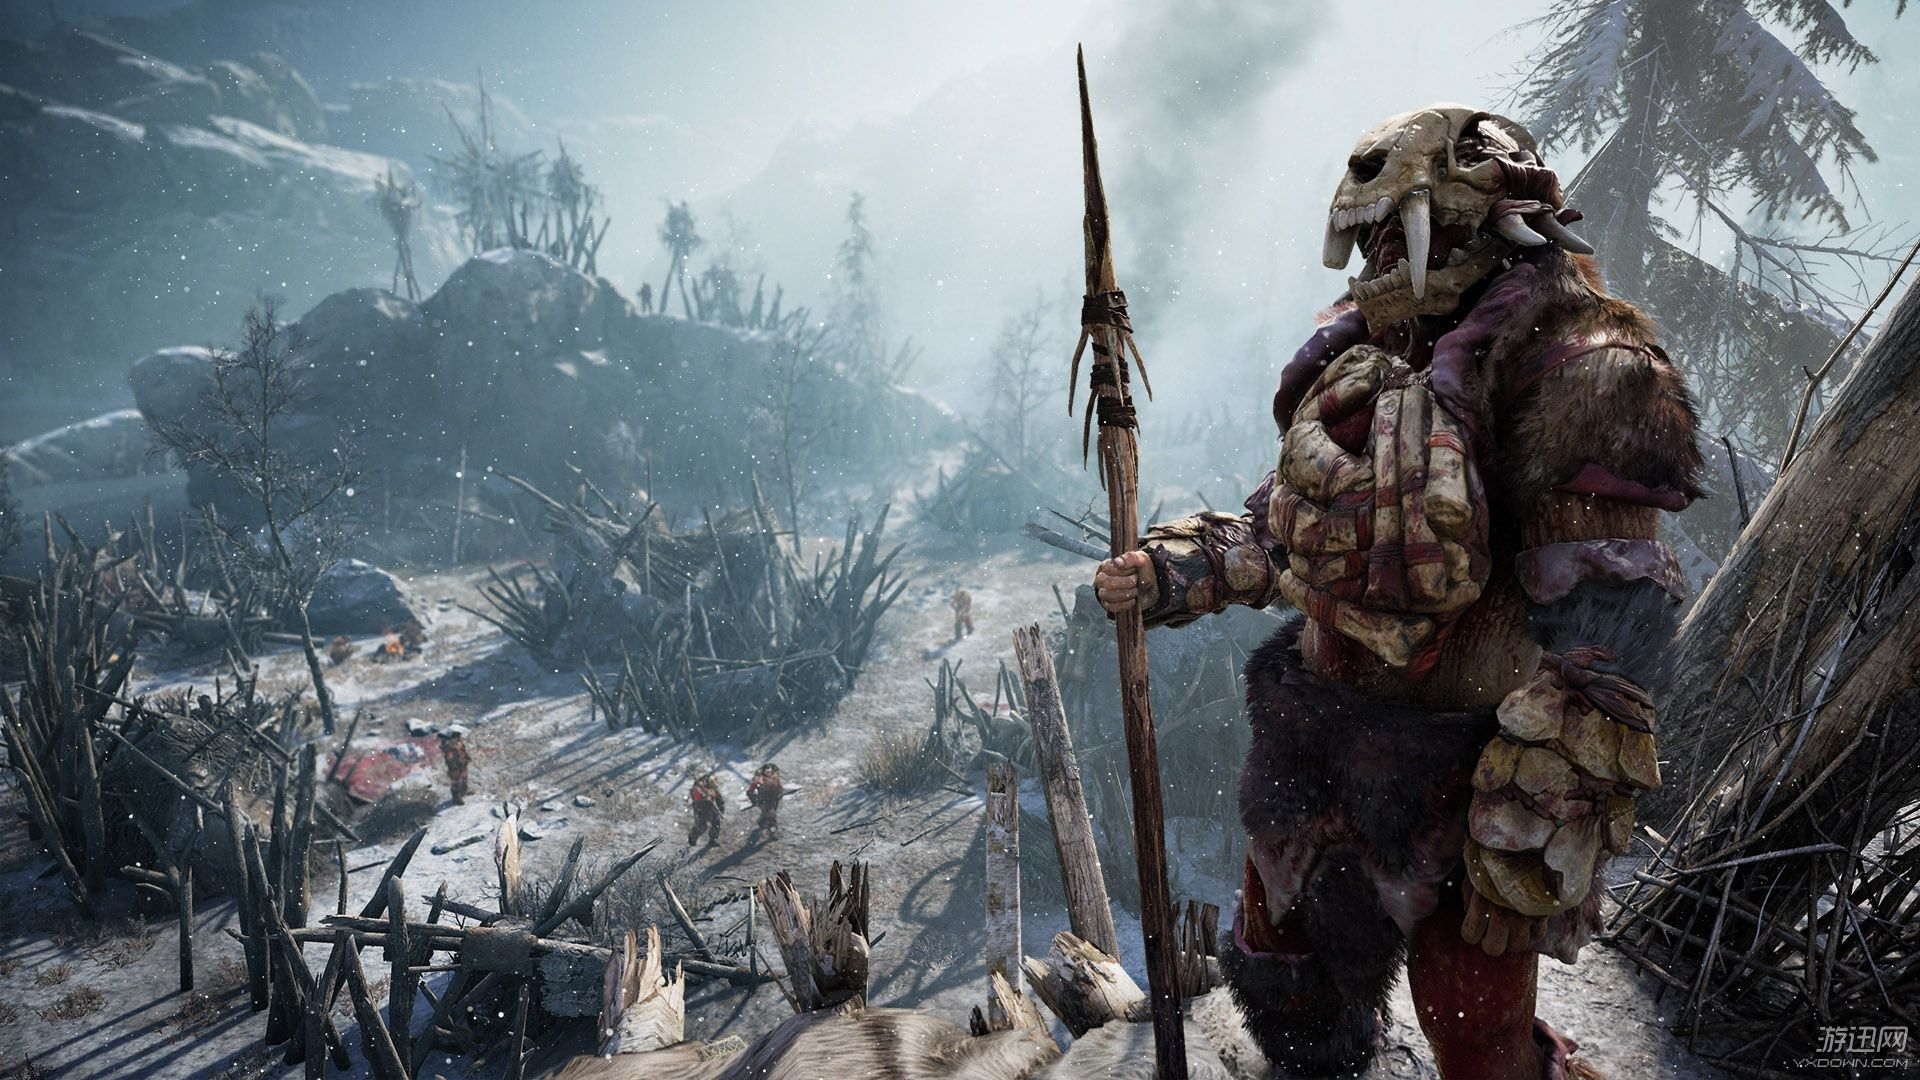 Far Cry Primal Wallpaper: Far Cry Primal Backgrounds, Pictures, Images